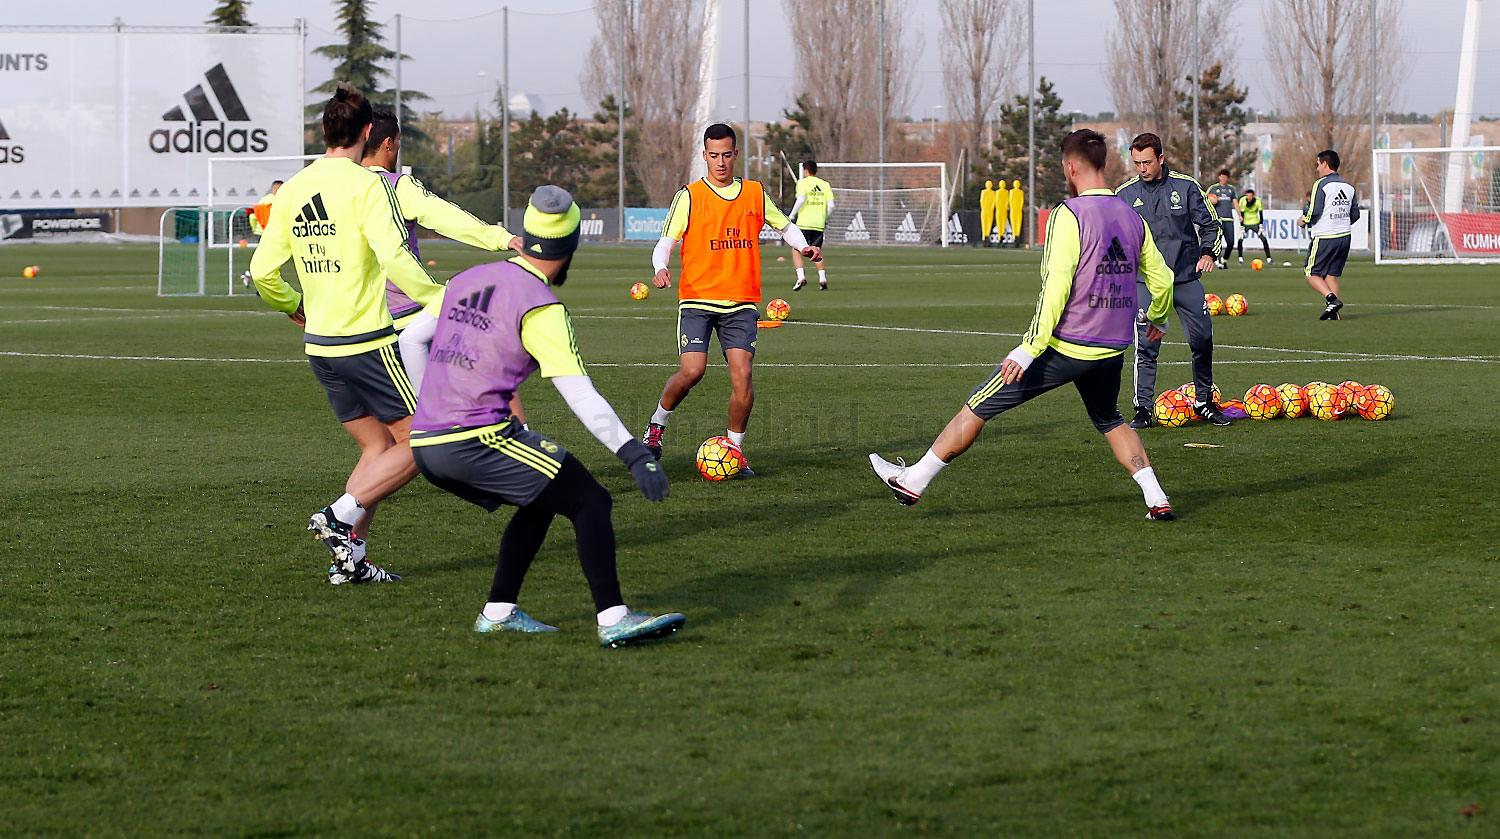 Real Madrid - Entrenamiento del Real Madrid - 18-12-2015